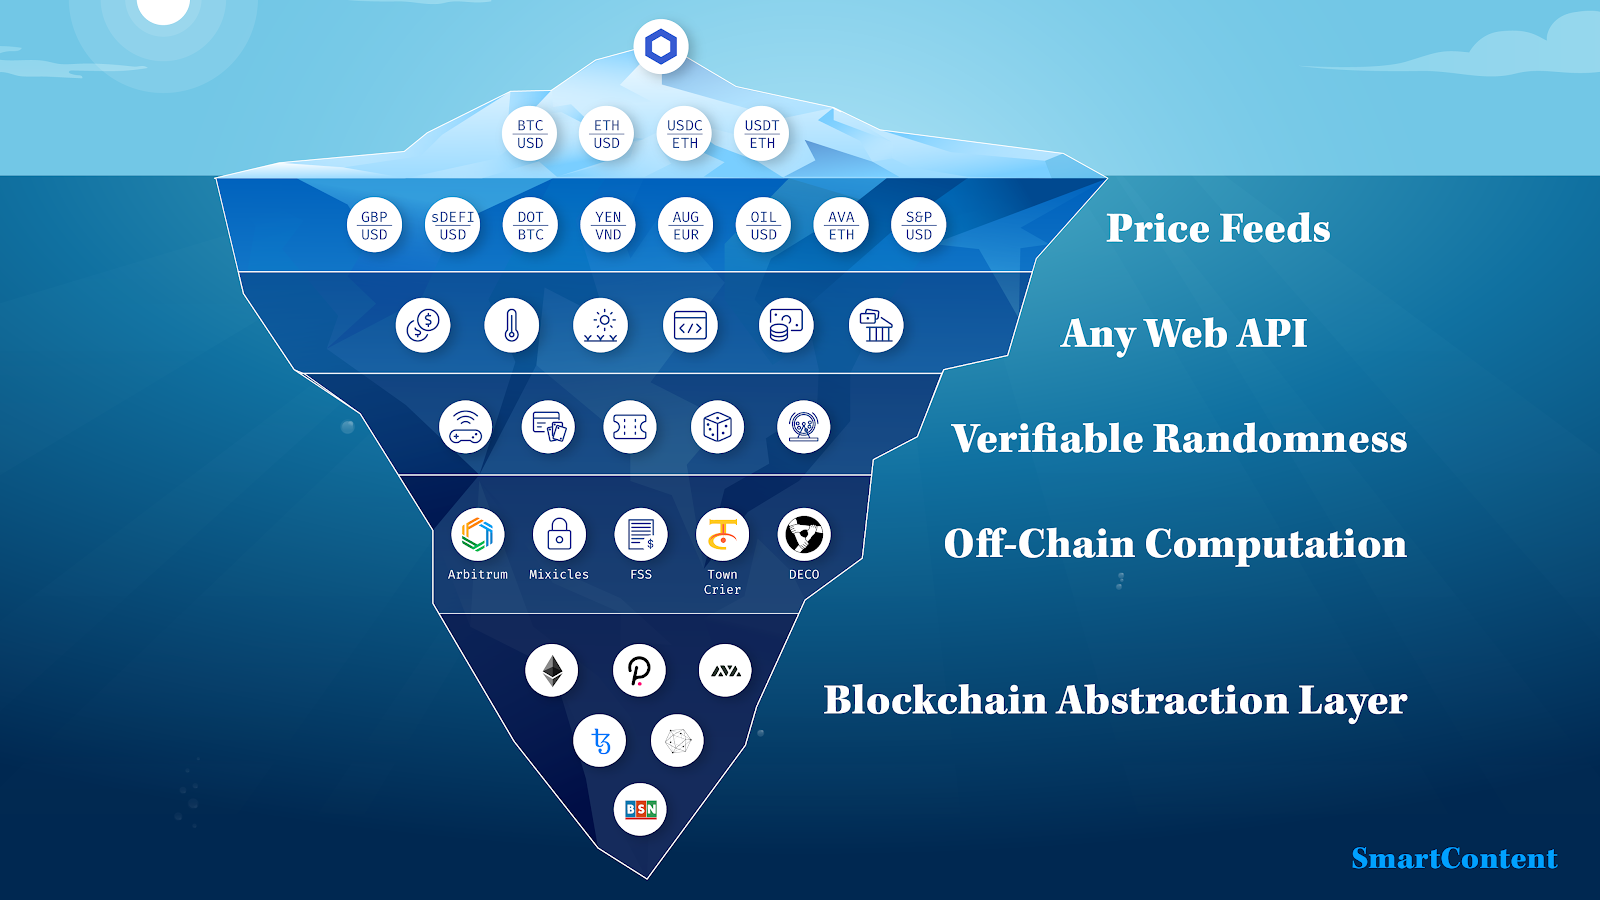 Chainlink use cases iceberg infographic